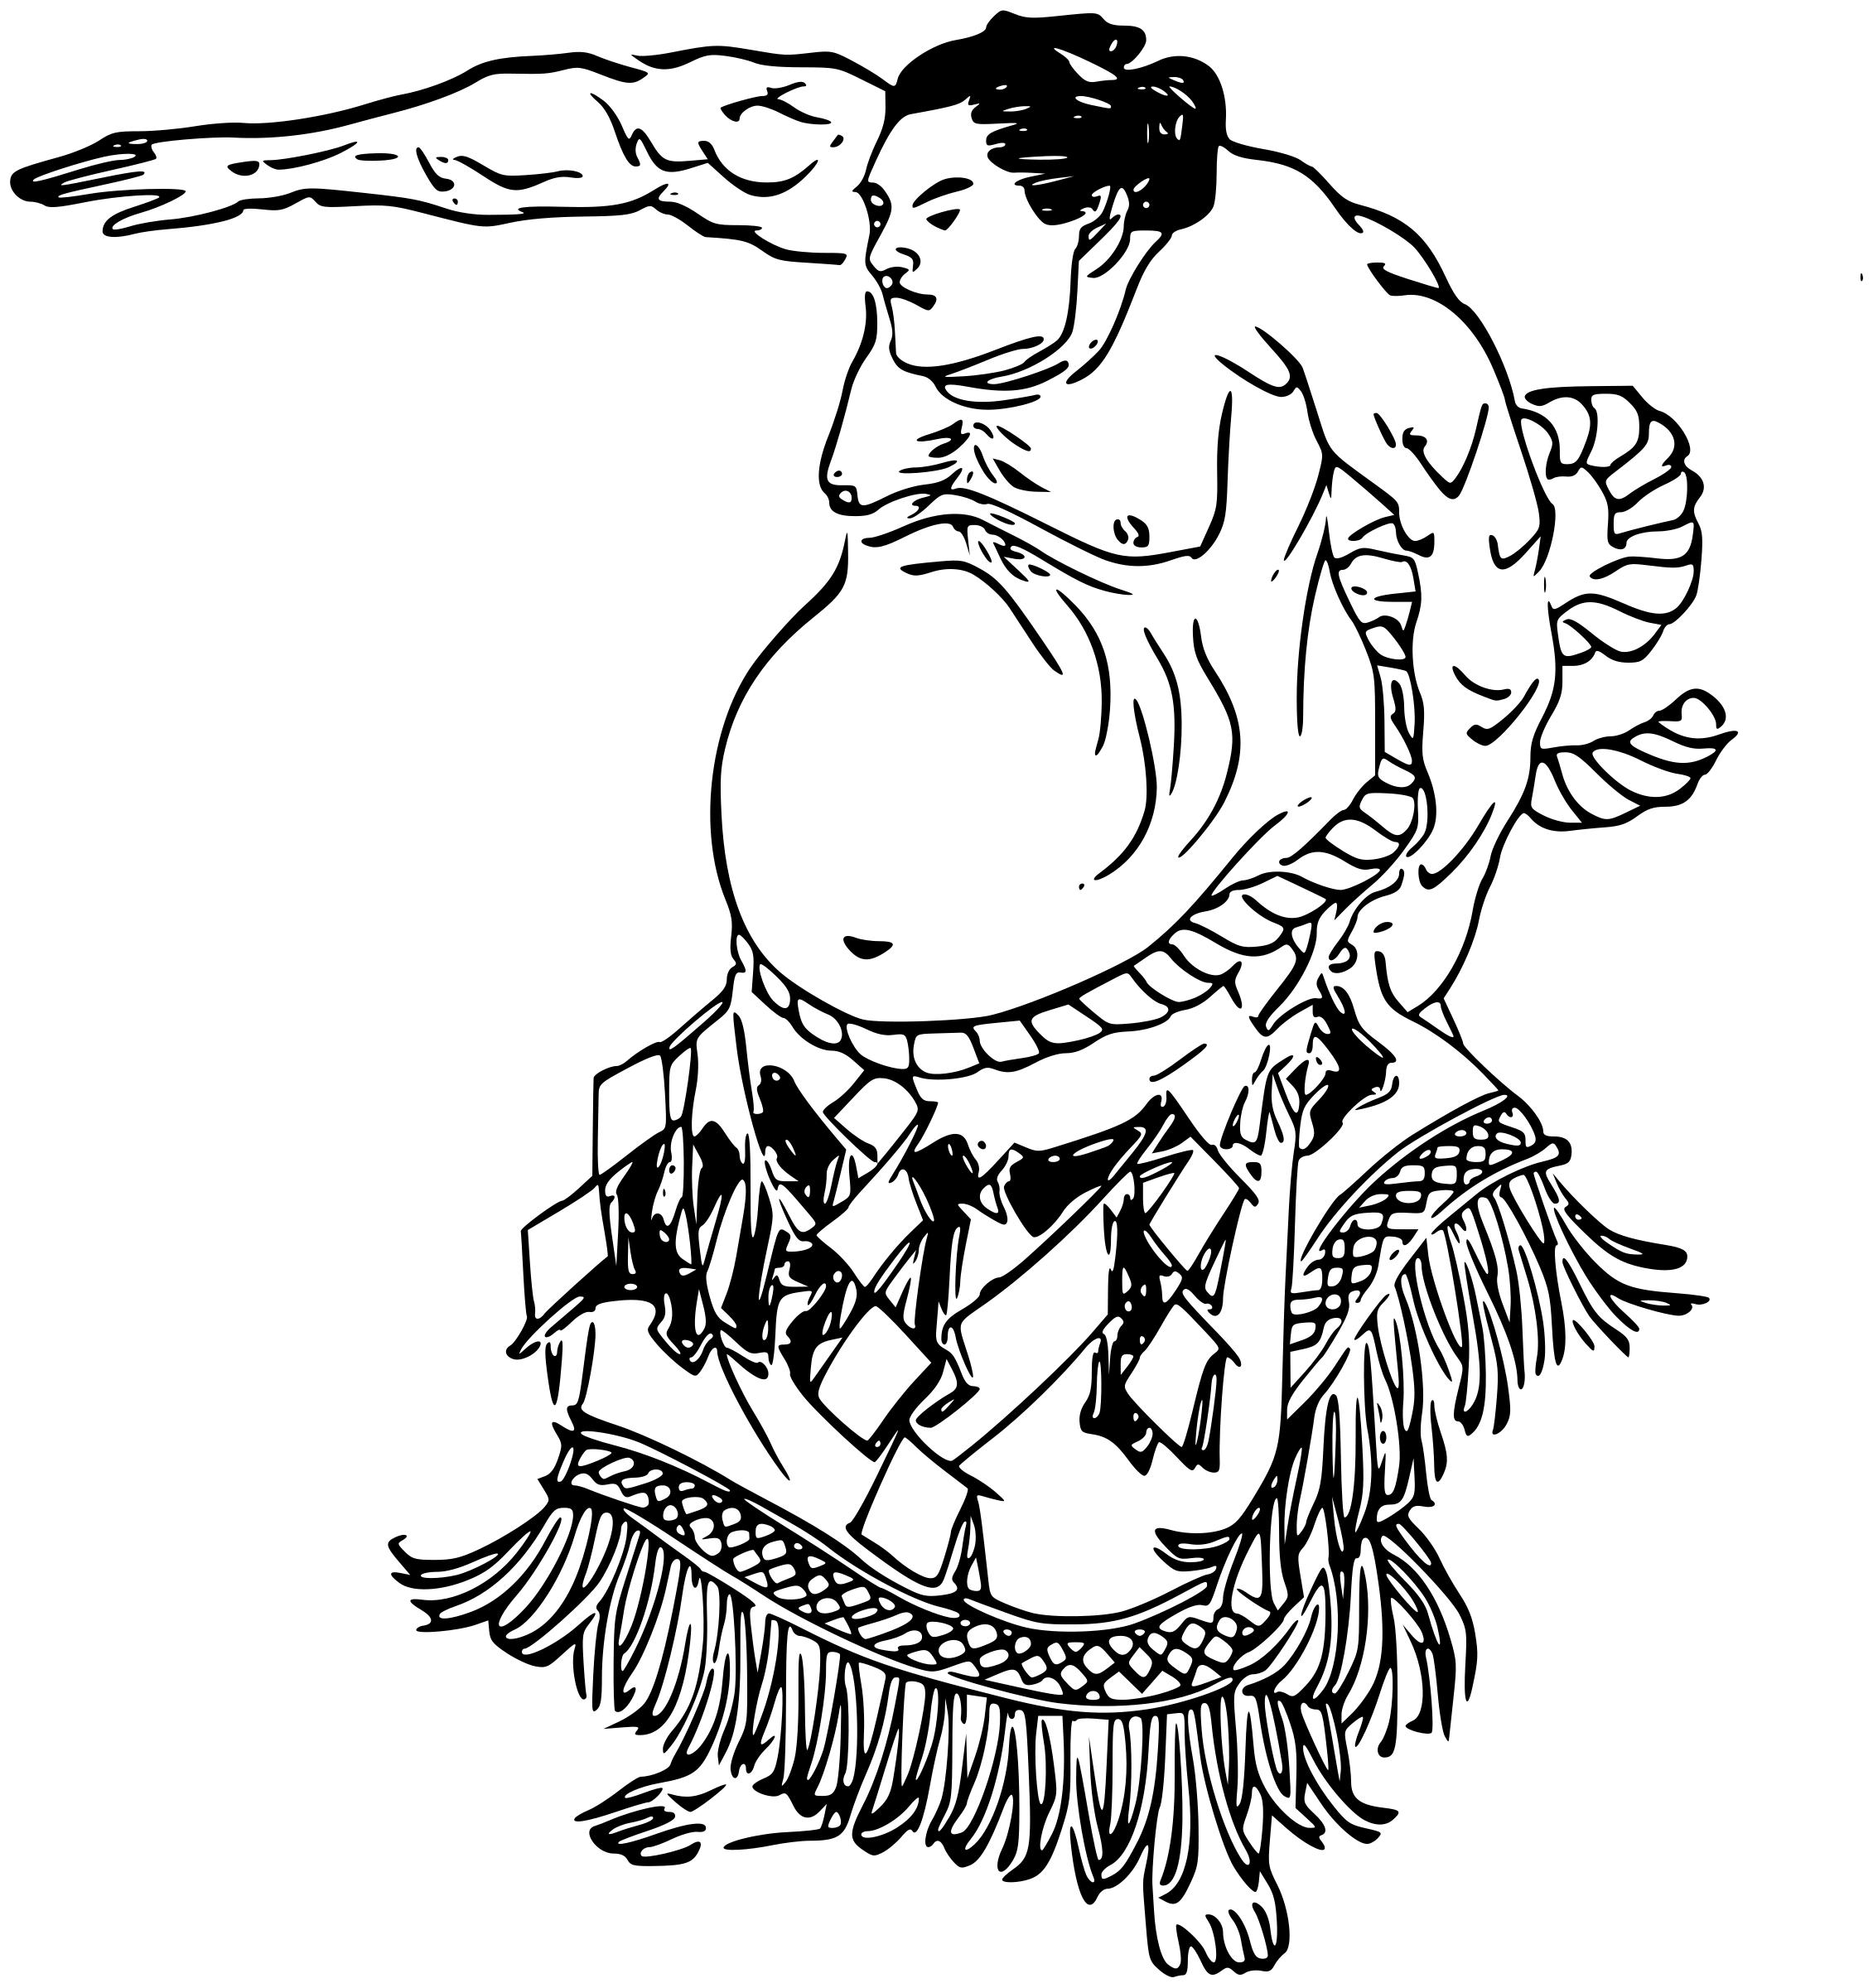 2261x2400 Sumo Wrestler 3 Icons Png